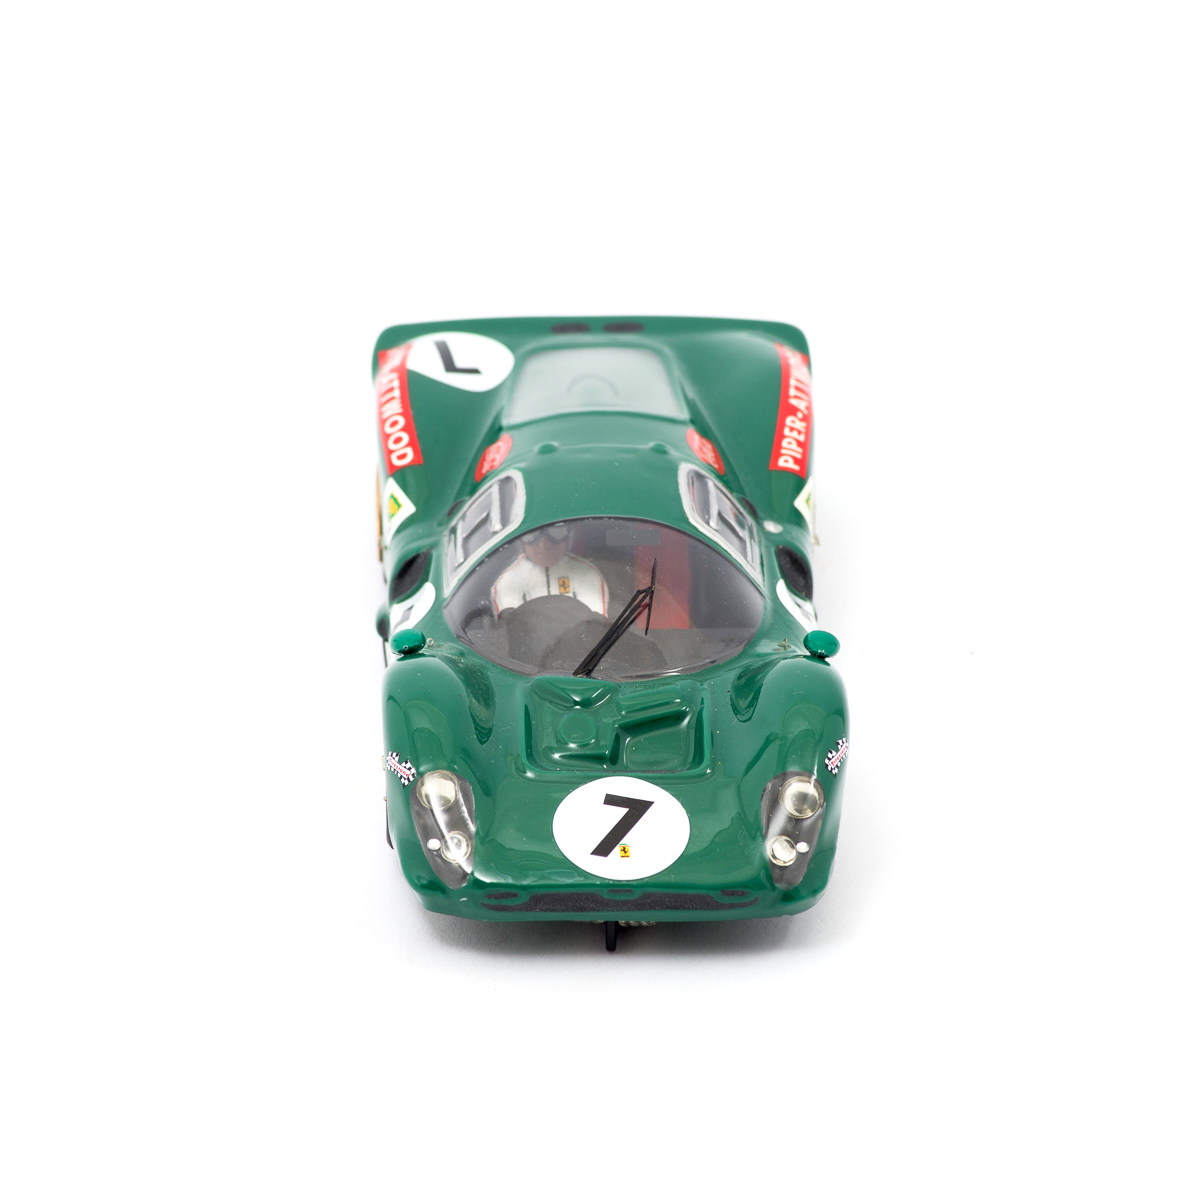 Slot Car Ferrari 412 P #7 Piper/Atwood 1:24